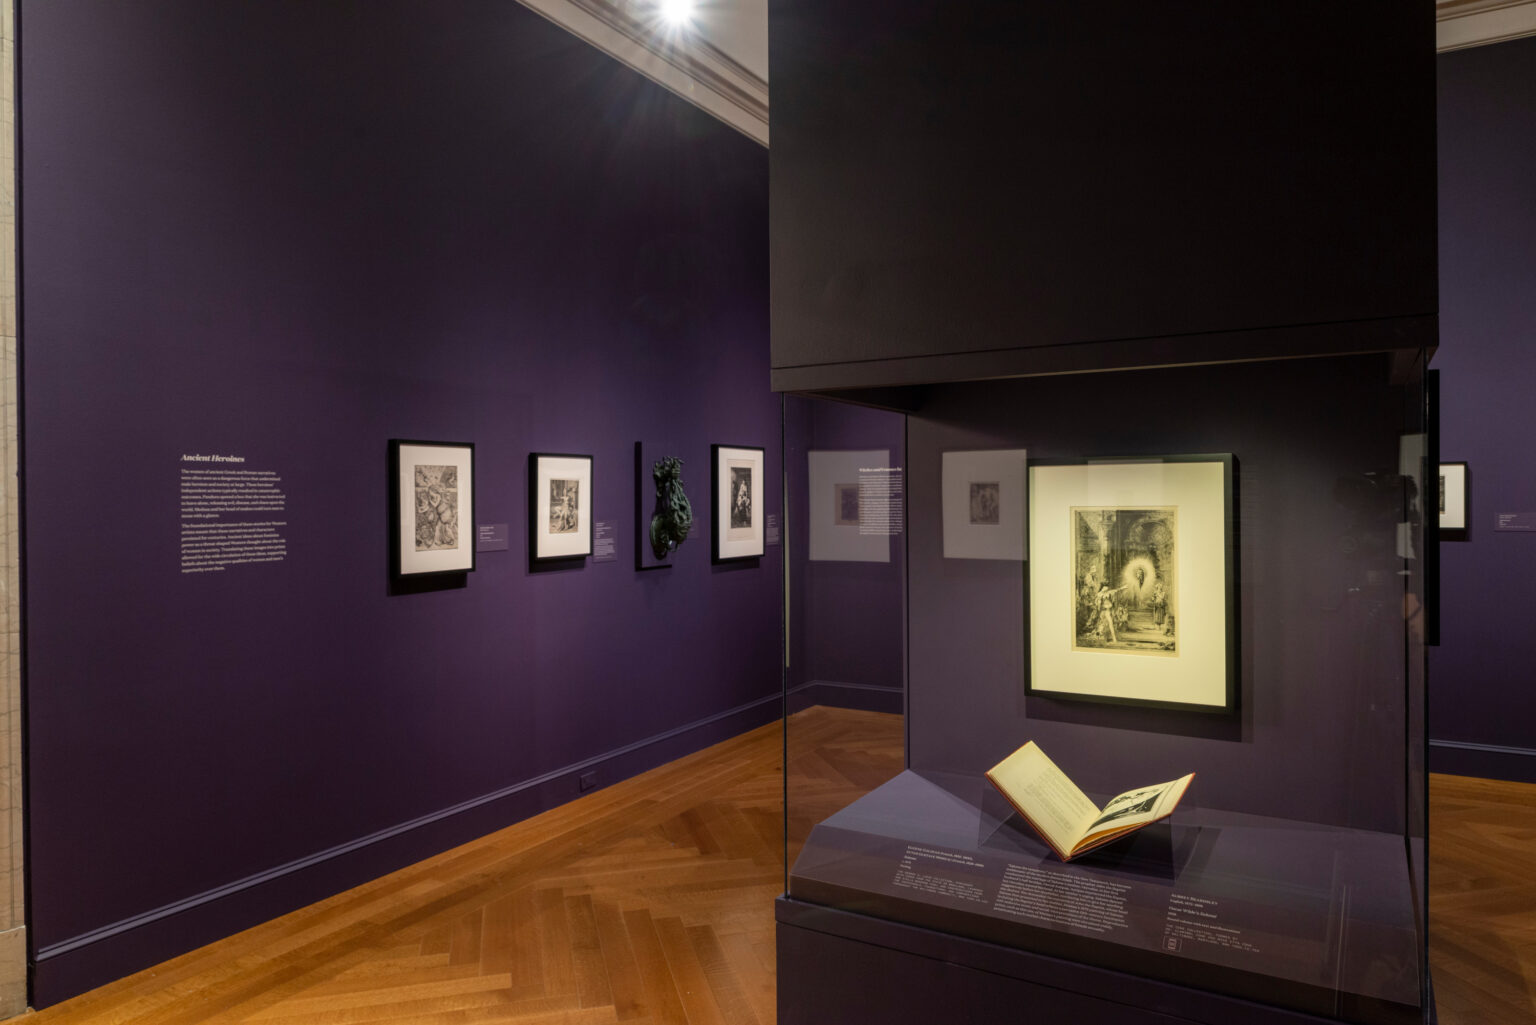 Installation view, Women Behaving Badly: 400 Years of Power & Protest